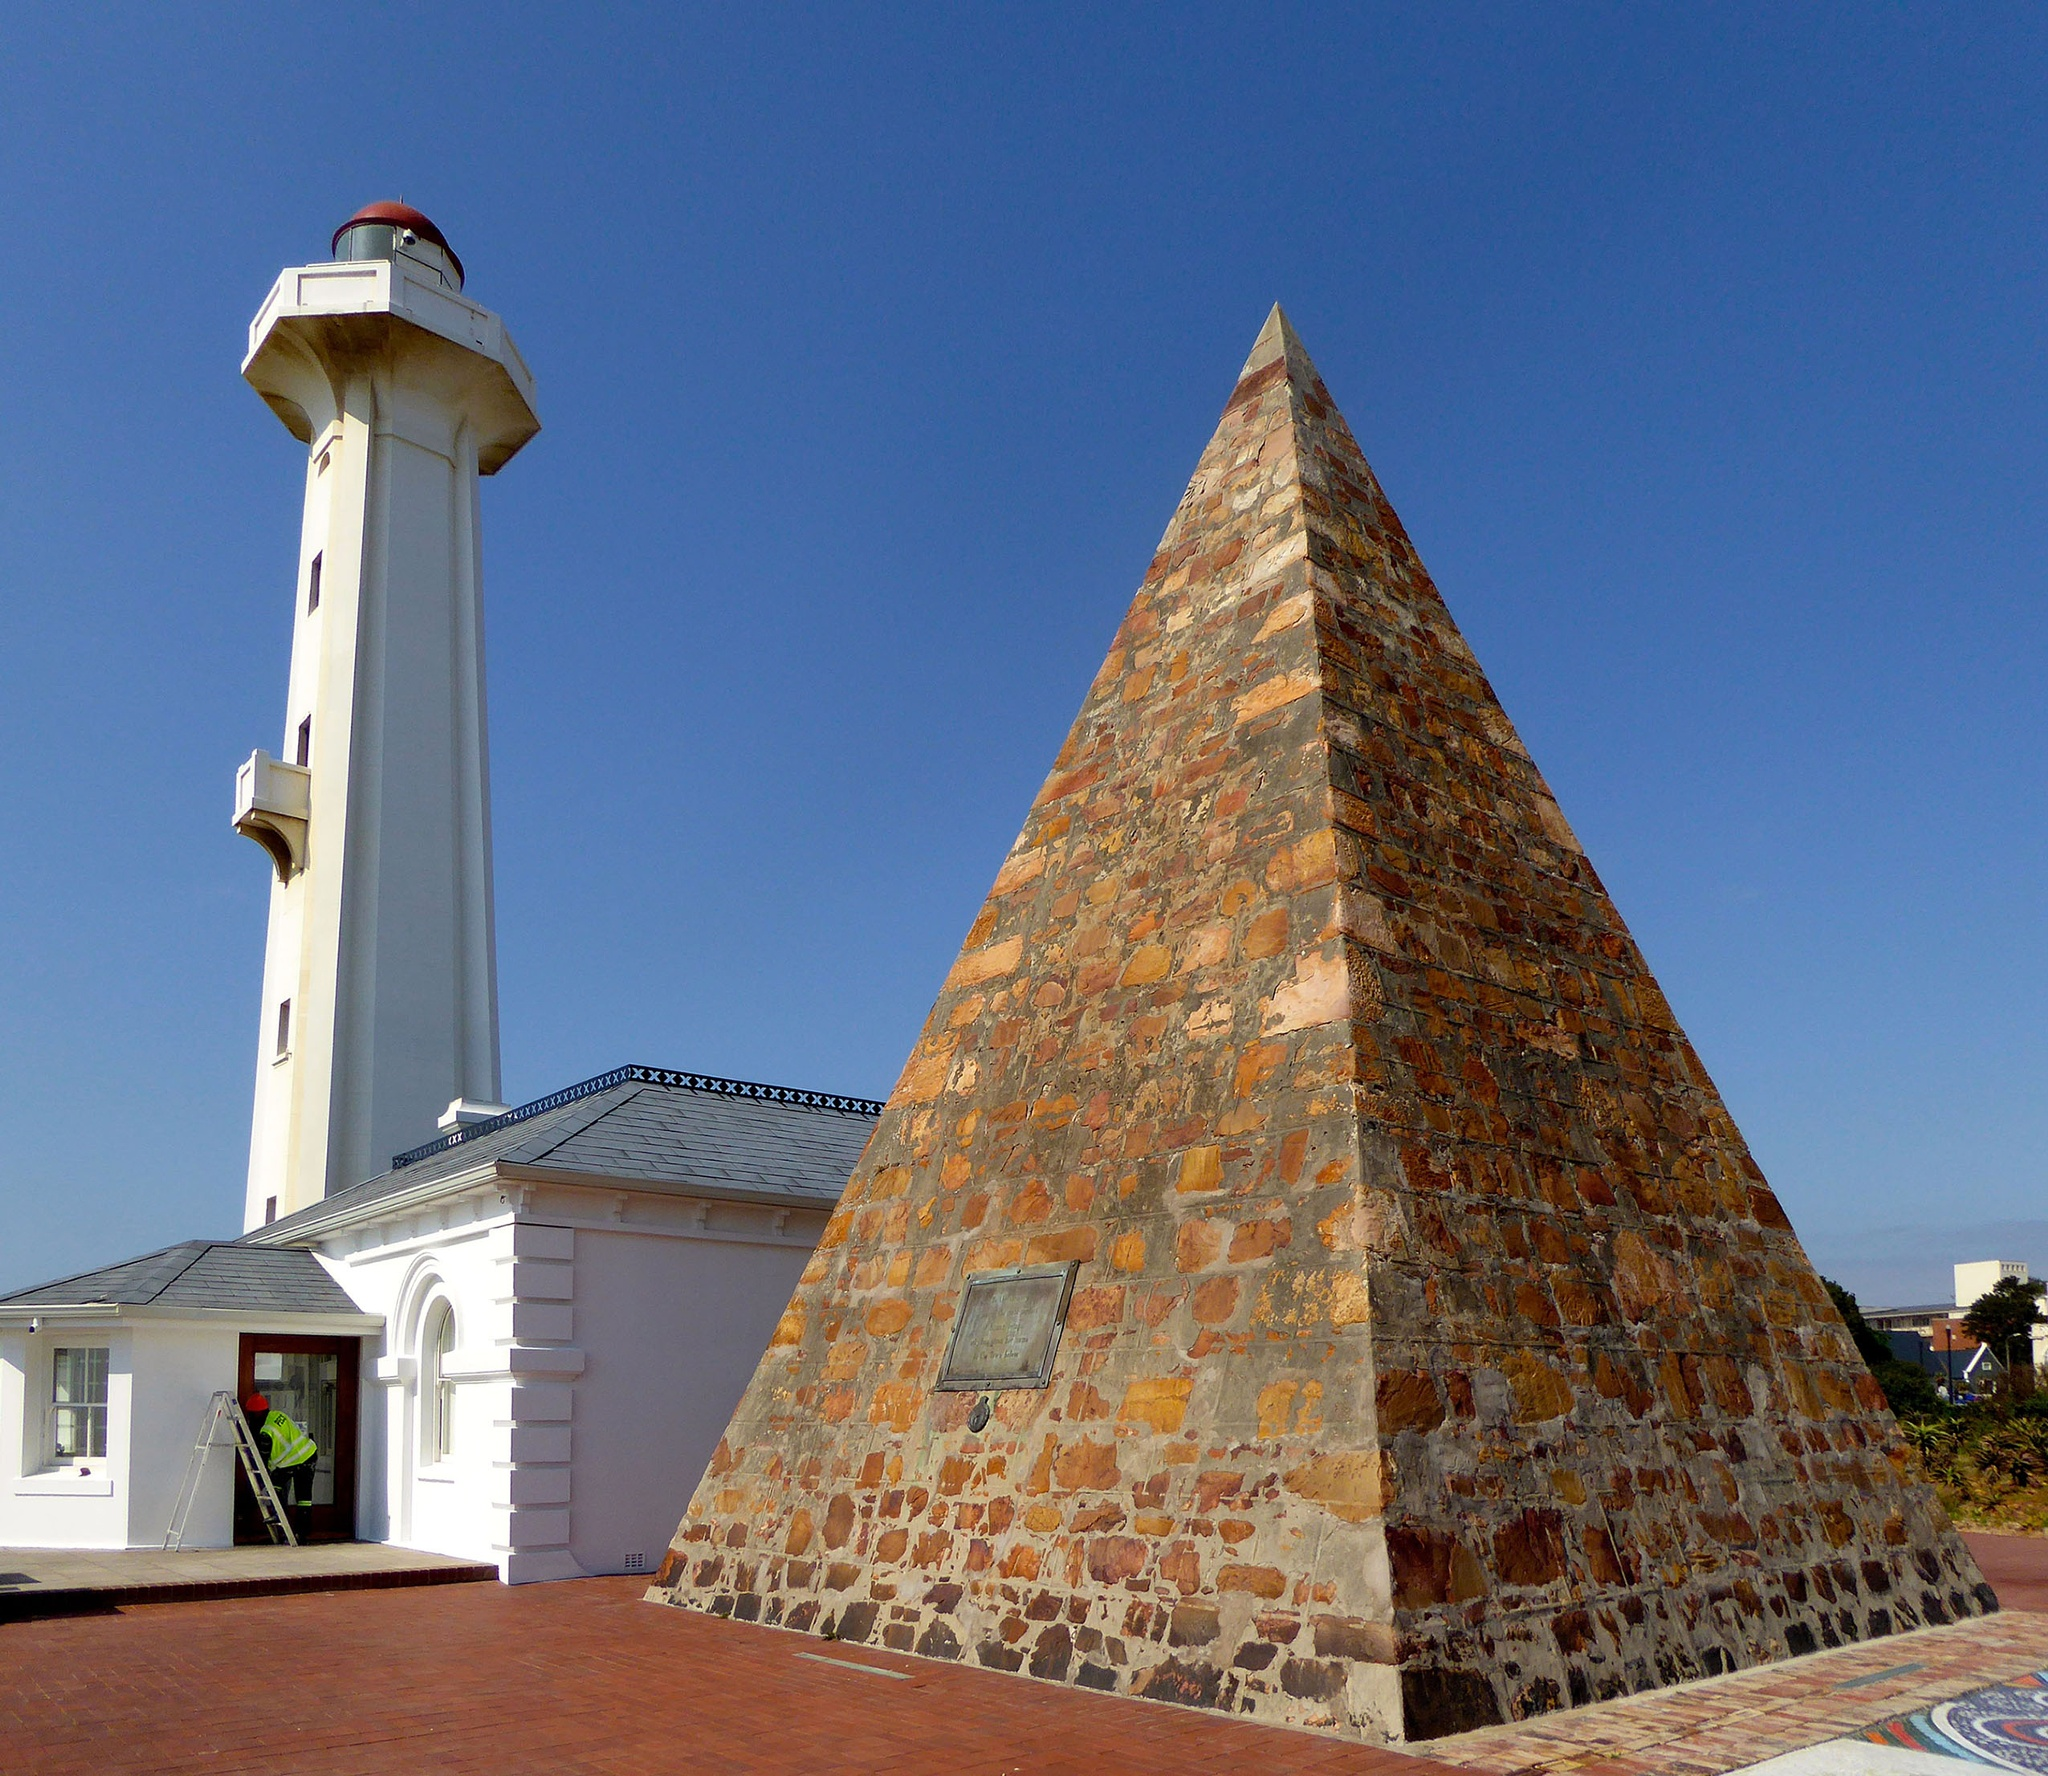 Light house and Pyramid in Port Elizabeth, South Africa by Erwin Widmer